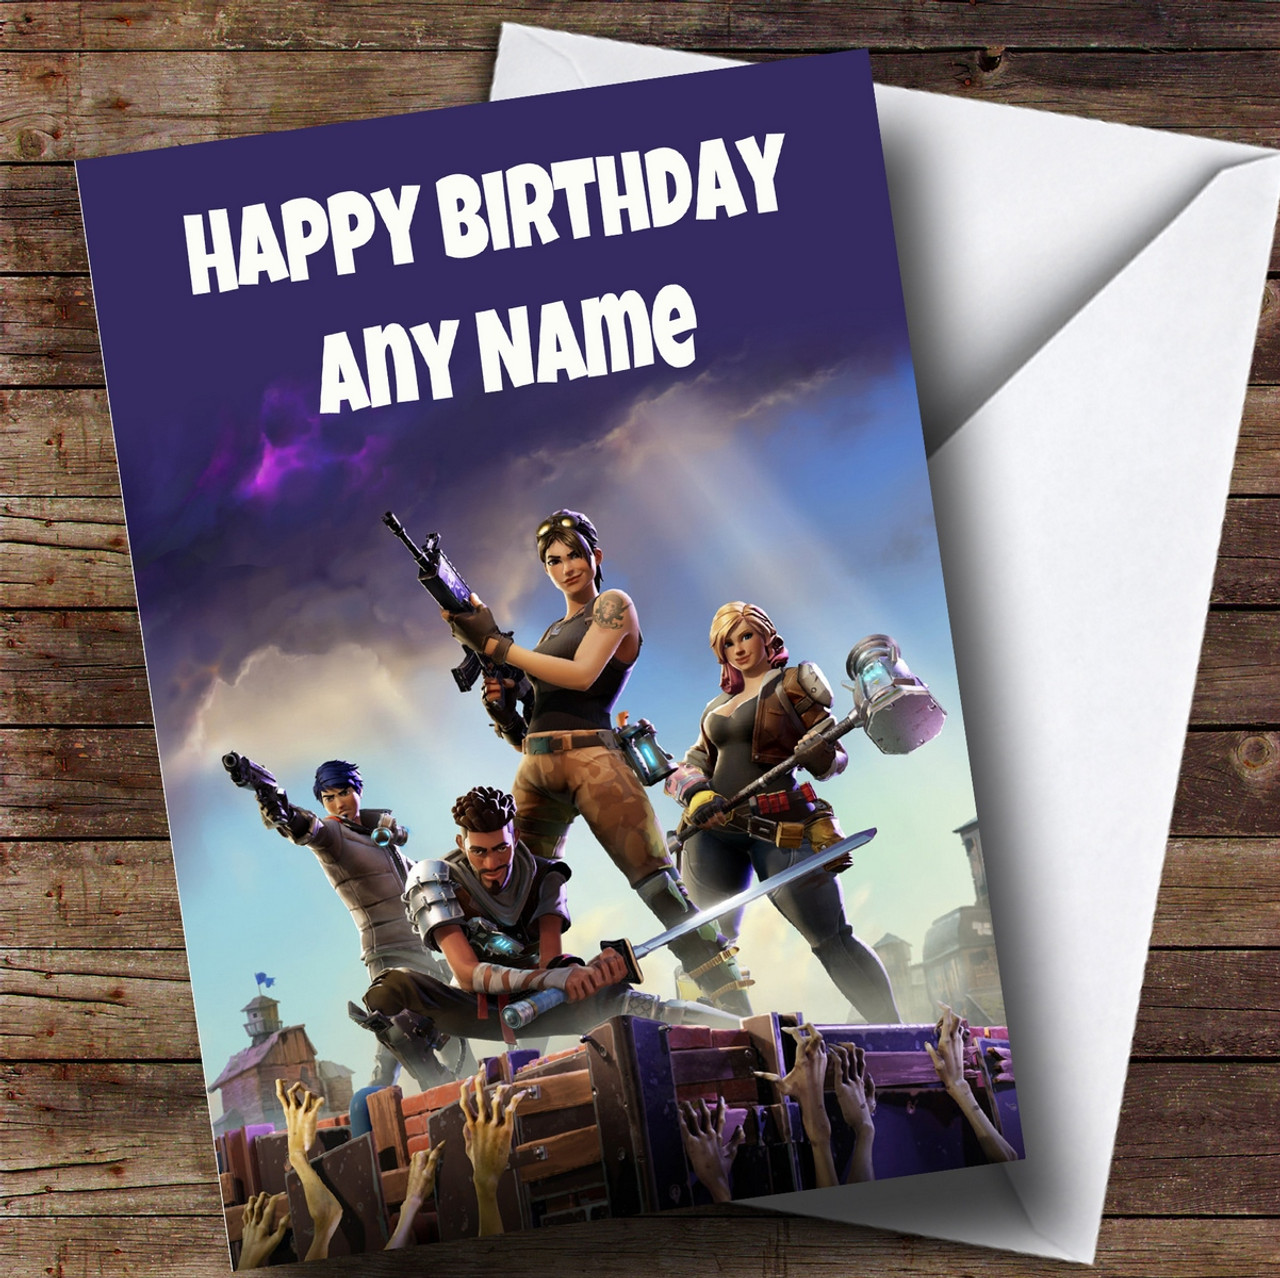 image about Fortnite Birthday Card Printable called Personalized Fortnite Video game Childrens Birthday Card